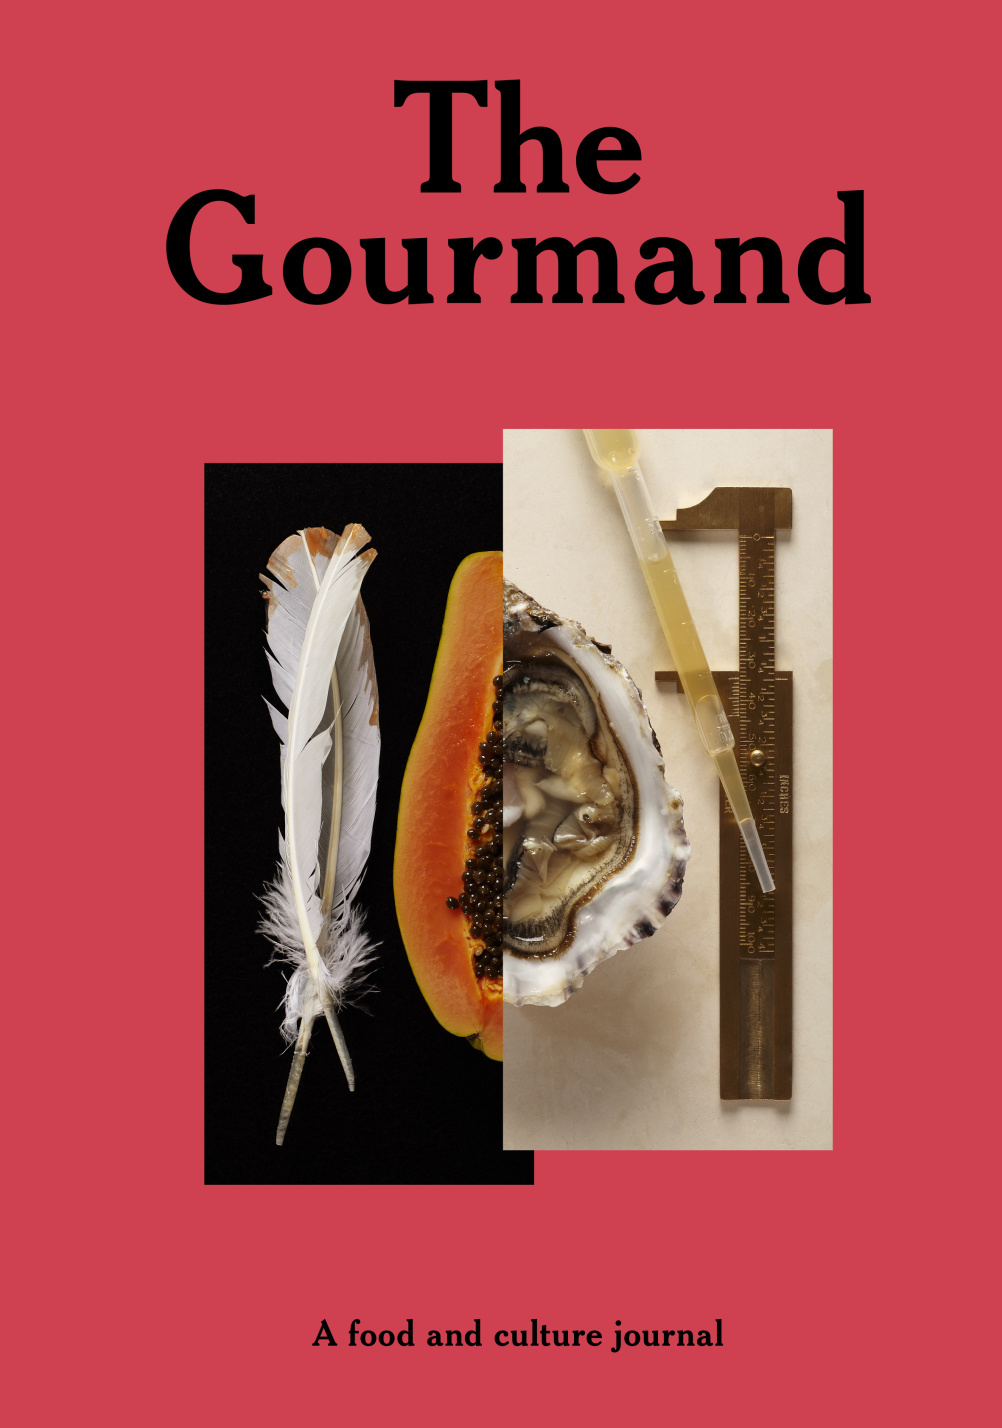 The Gourmand - A Food and Culture Journal - Created by David Lane (Creative Director), Marina Tweed and David Lane (Founders/Editors-in-chief)